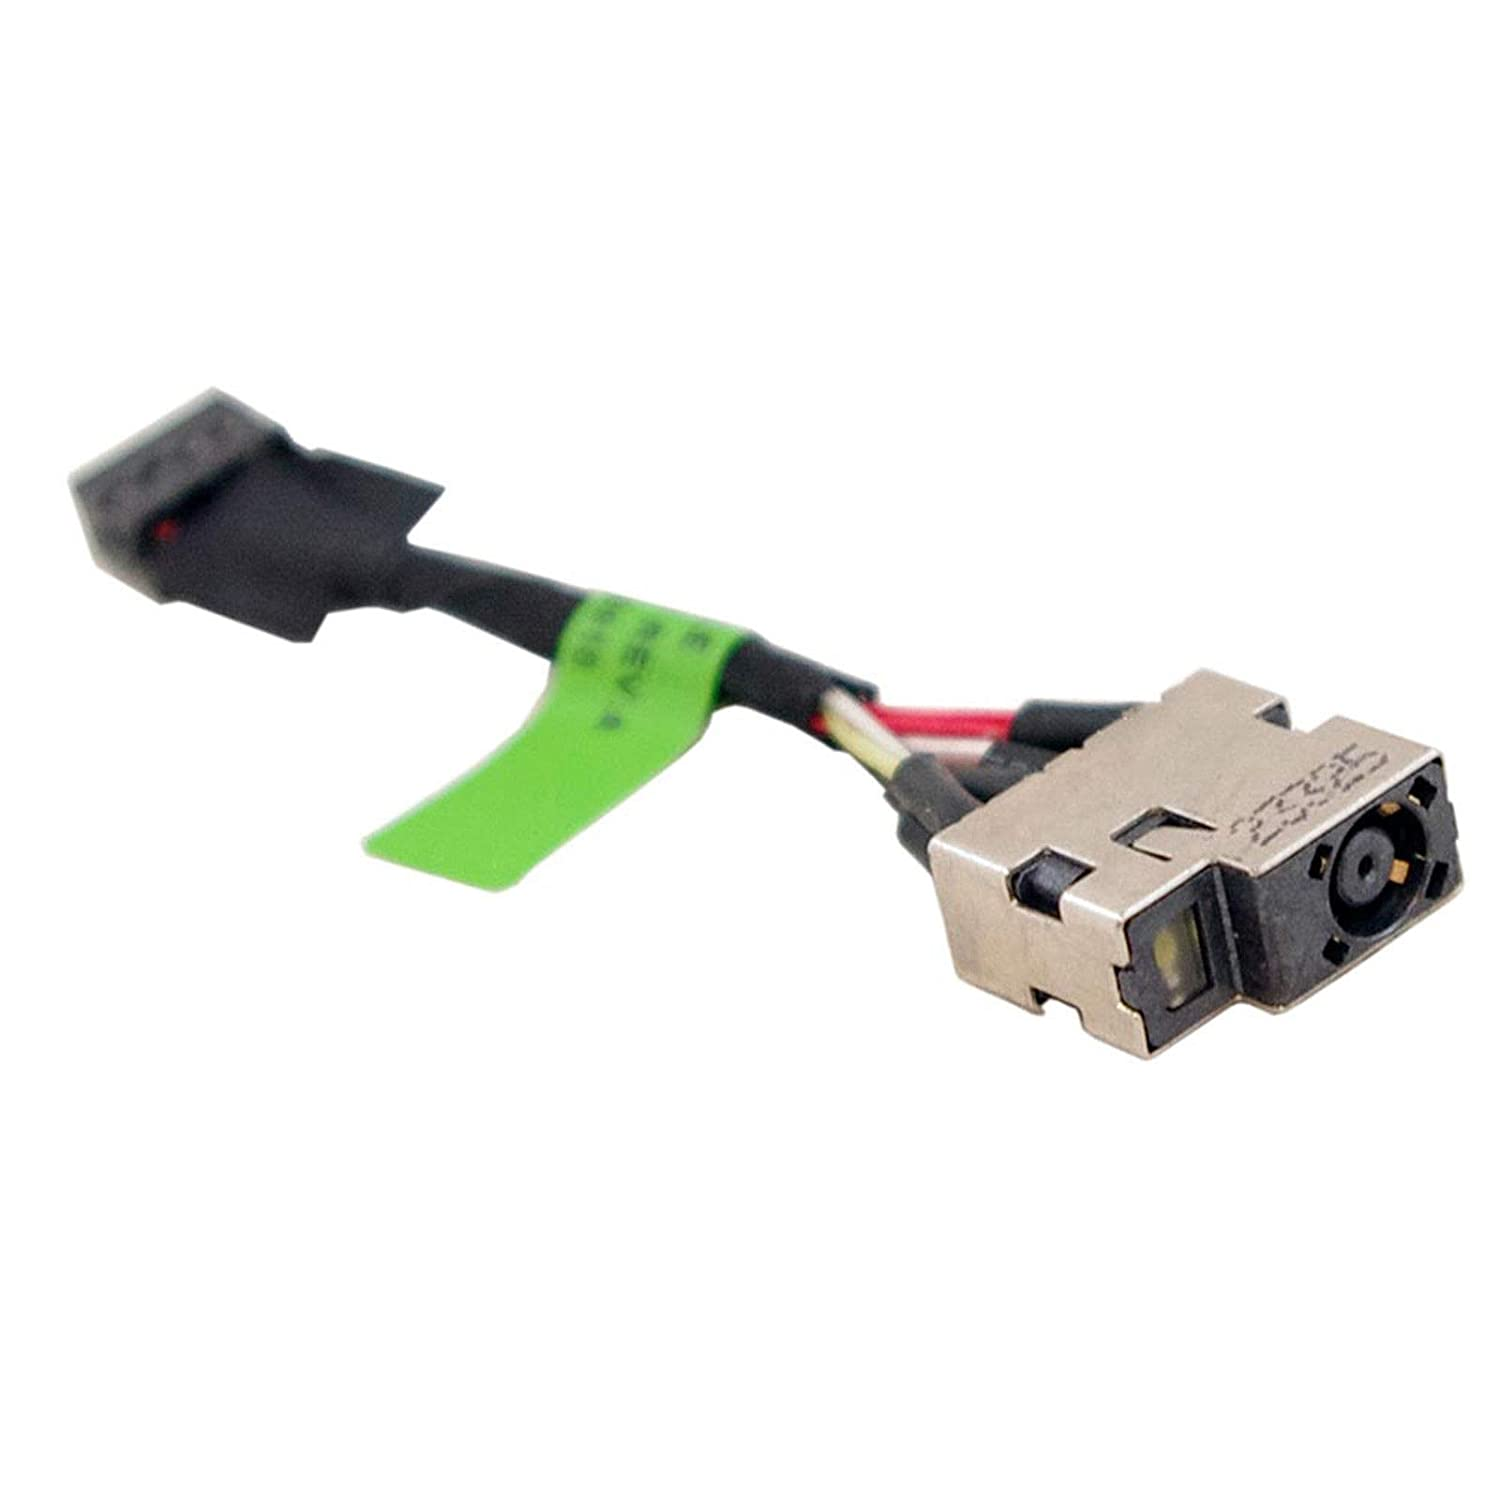 DBParts DC Power Jack Cable For HP Pavilion 15-P001NR 15-P011NR 15-P030NR 15-P071NR 15-P151NR 15-P210NR 15-P221NR 15-P222NR 15-P224NR 15-P283NR 15-P390NR 15-p391nr 15-P393NR 15-P019NR 15-P021NR P022NR